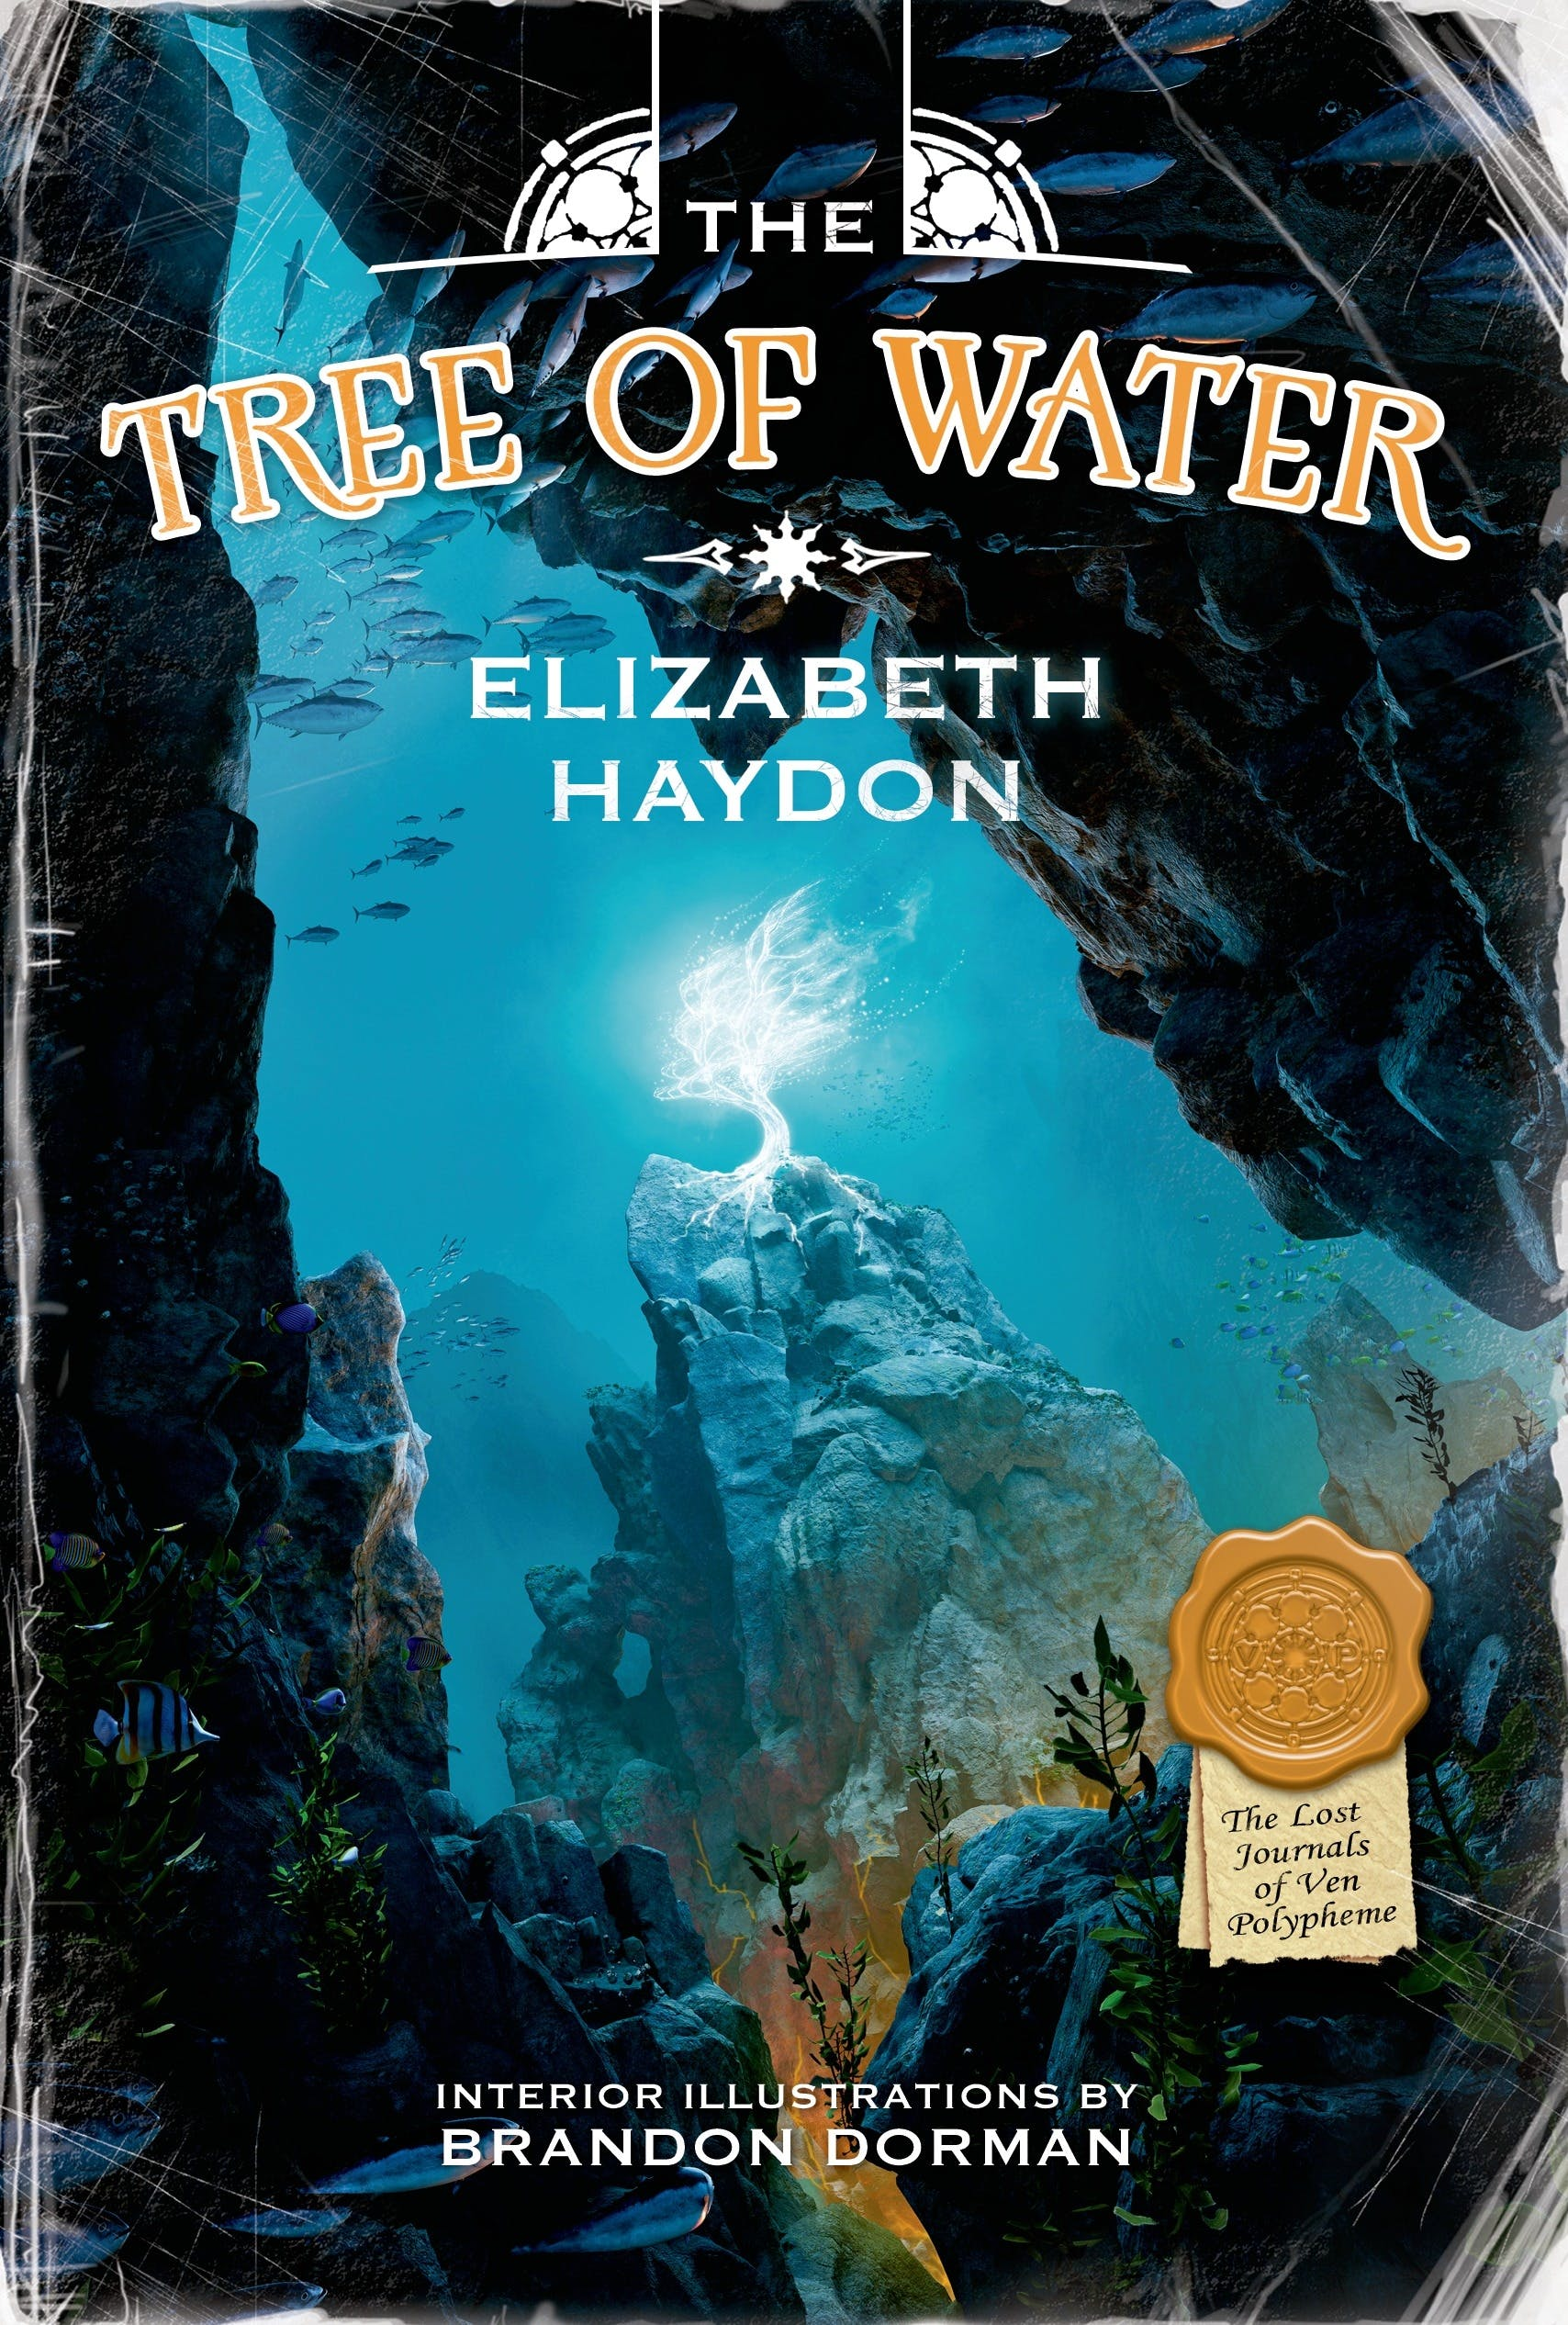 Image of The Tree of Water